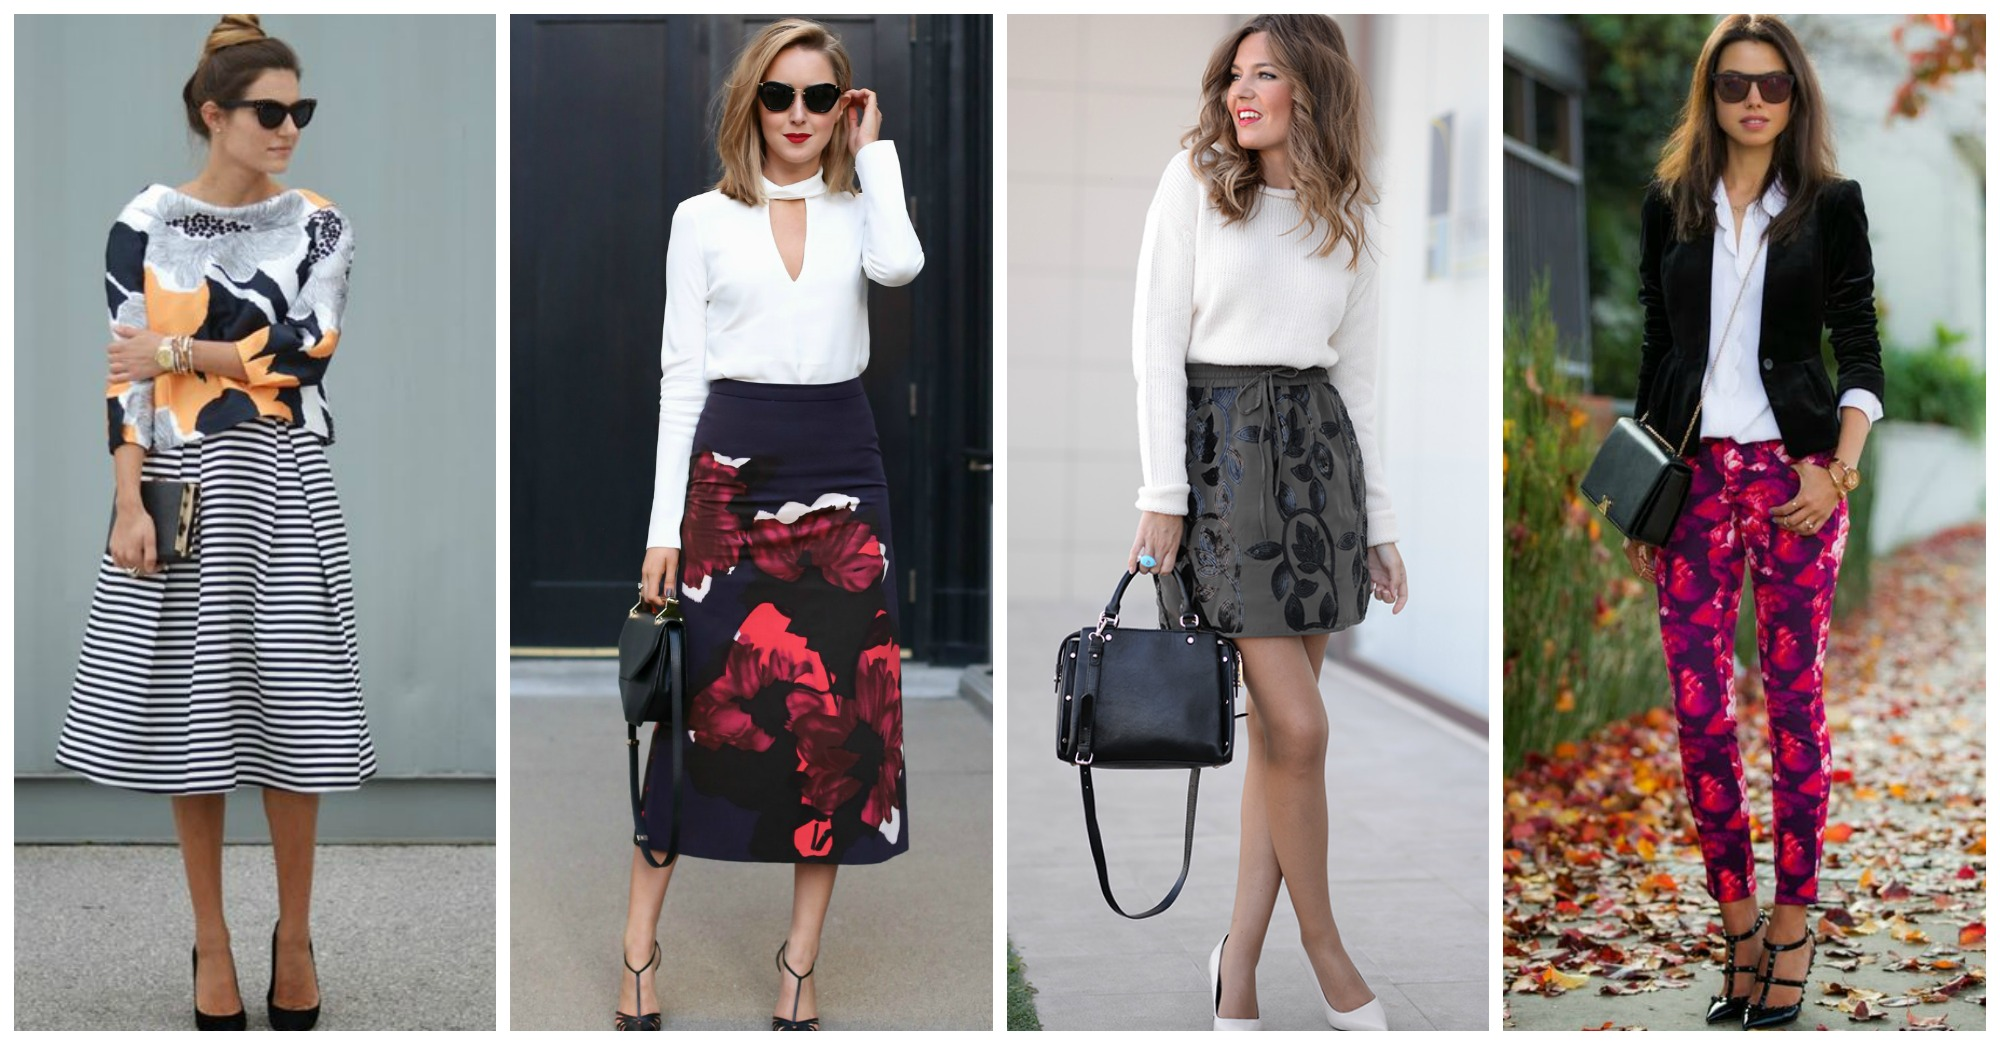 14 Trendy Outfits with Large Floral Prints to Wear This Fall